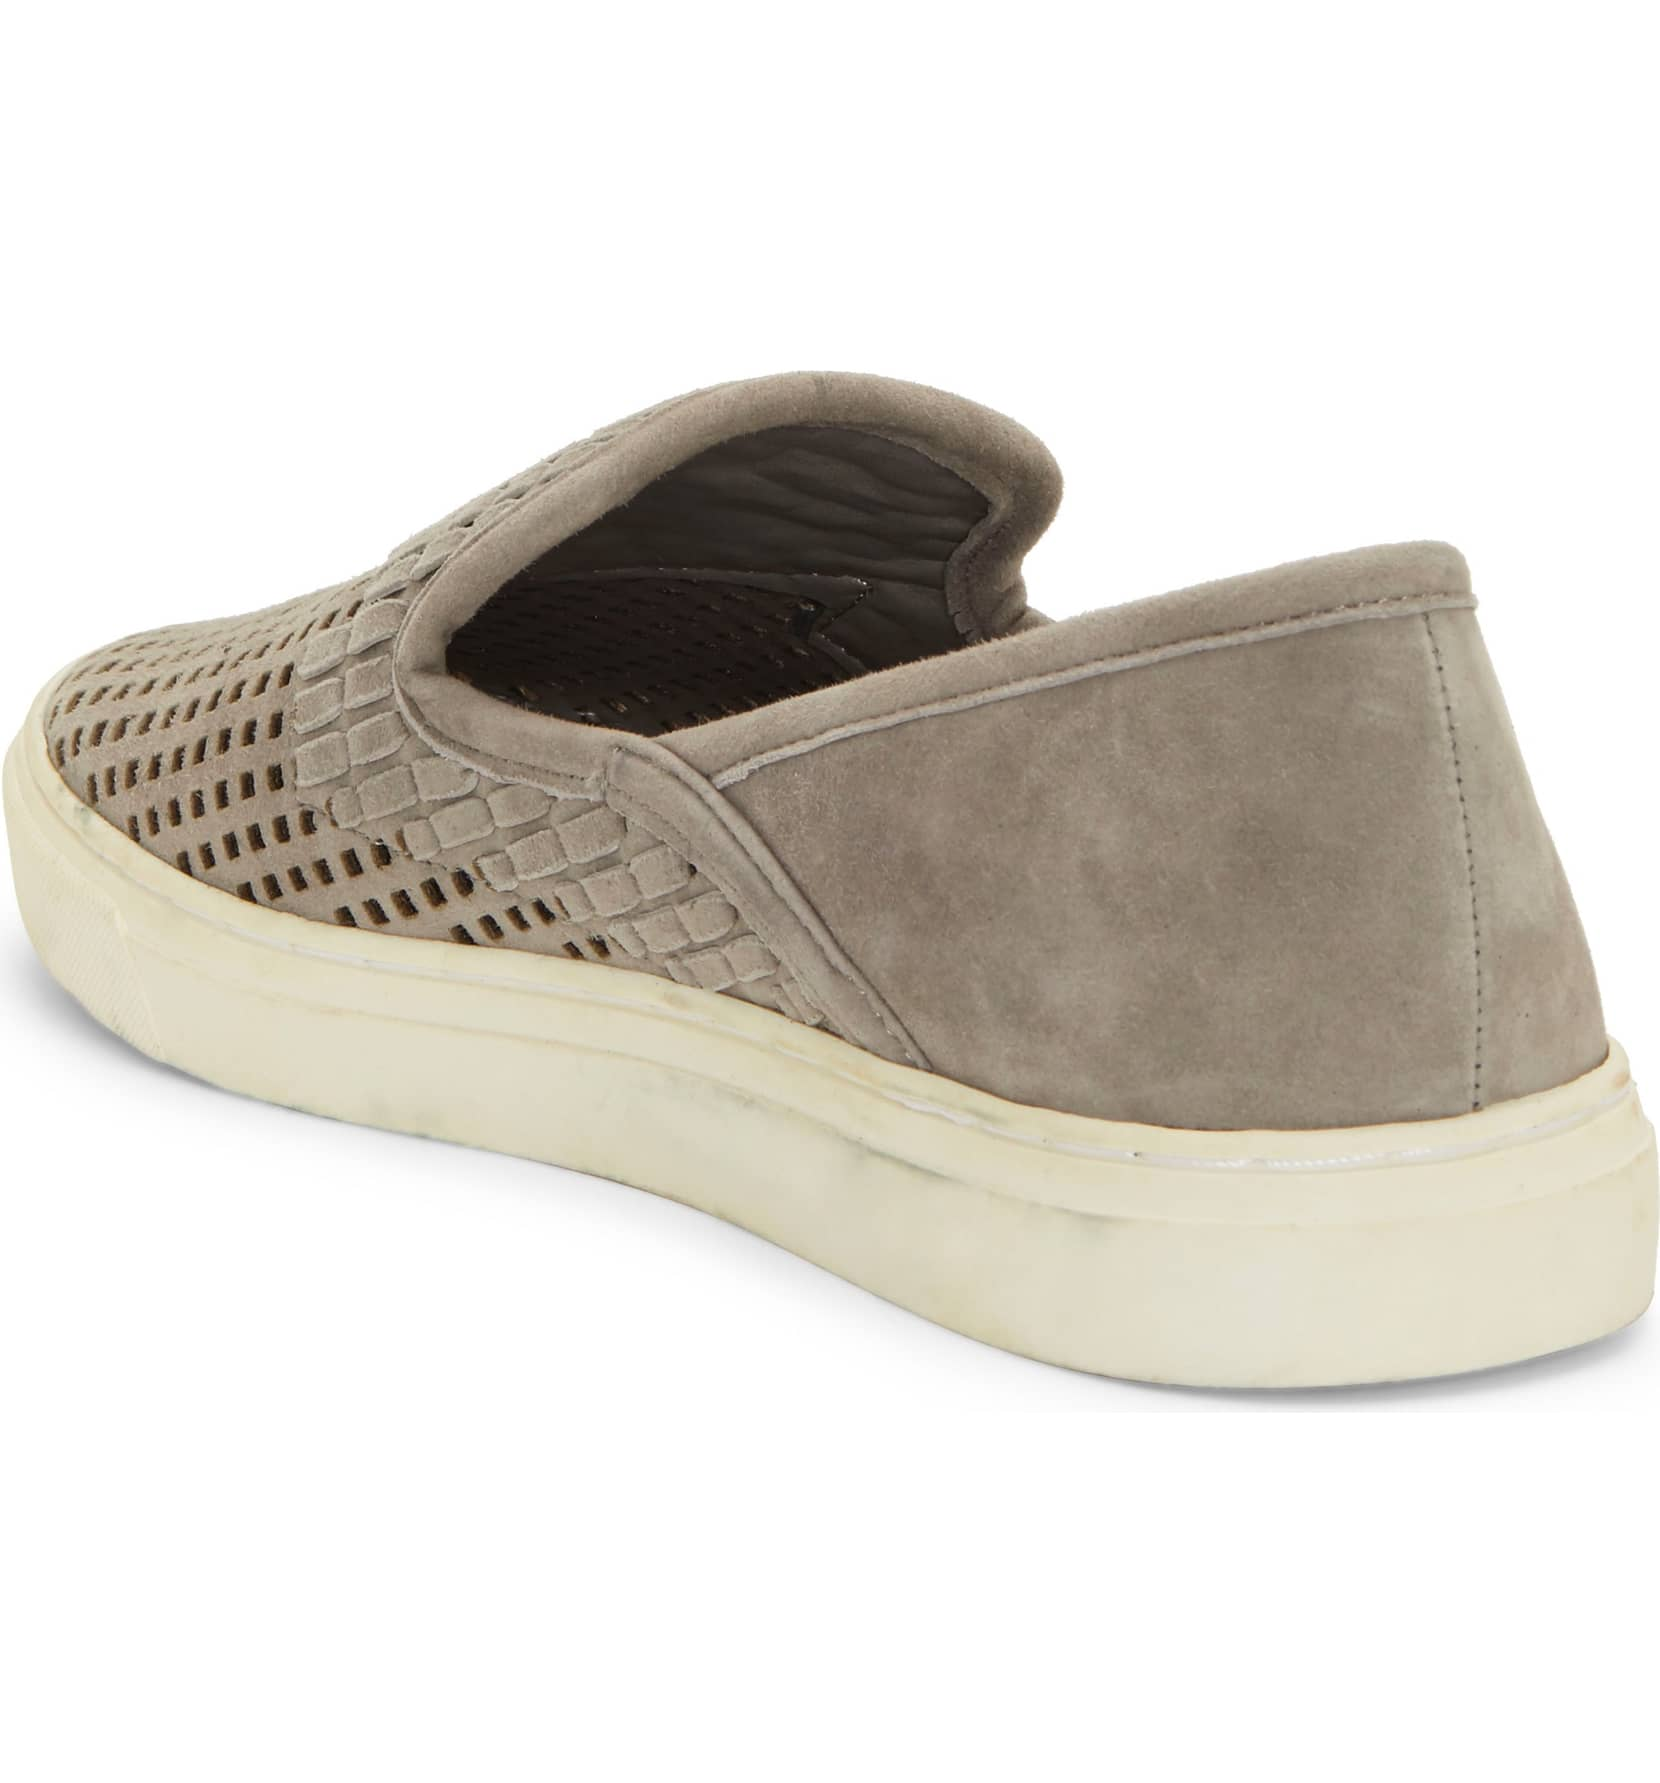 Vince-Camuto-Bristie-Storm-Grey-Leather-Woven-White-Sole-Slip-On-Sneakers thumbnail 22